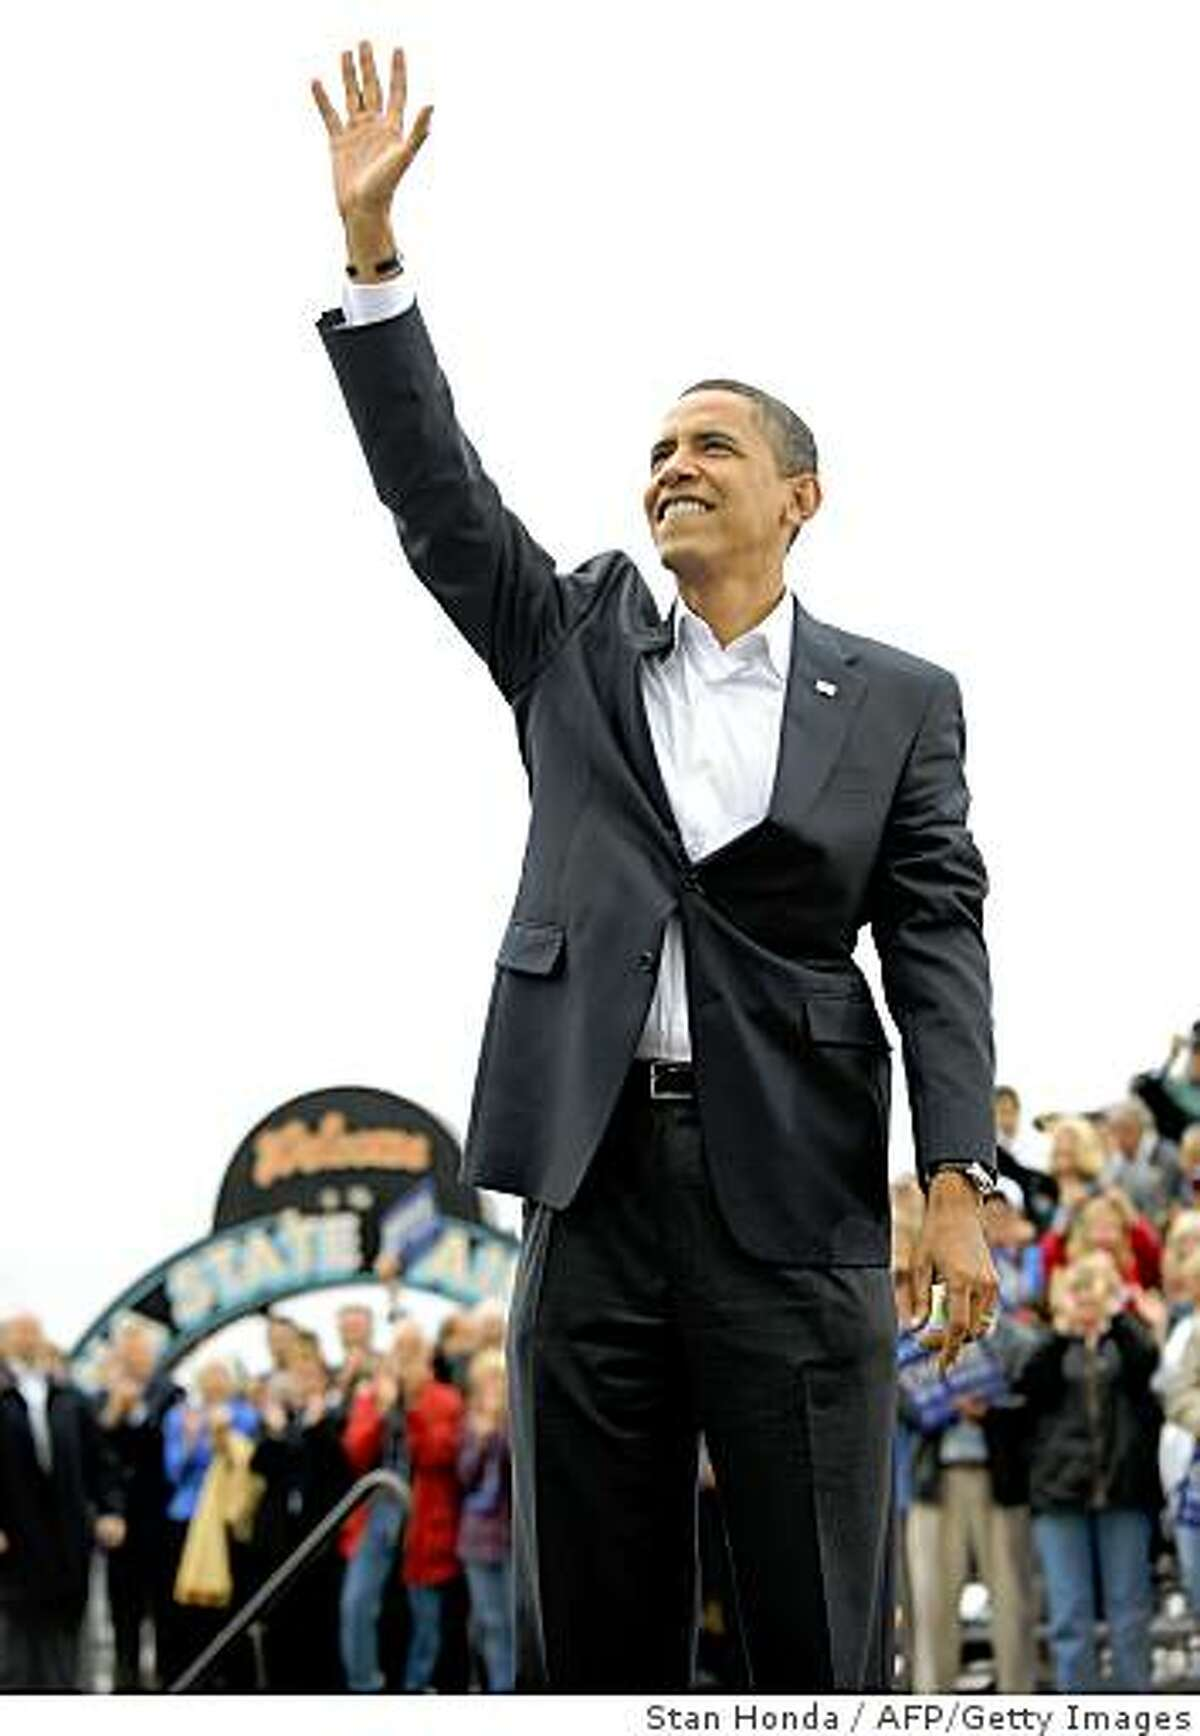 US Democratic presidential candidate Illinois Senator Barack Obama waves to the crowd at a rally October 8, 2008 at the Indiana State Fairgrounds in Indianapolis, Indiana. AFP PHOTO/Stan HONDA (Photo credit should read STAN HONDA/AFP/Getty Images)